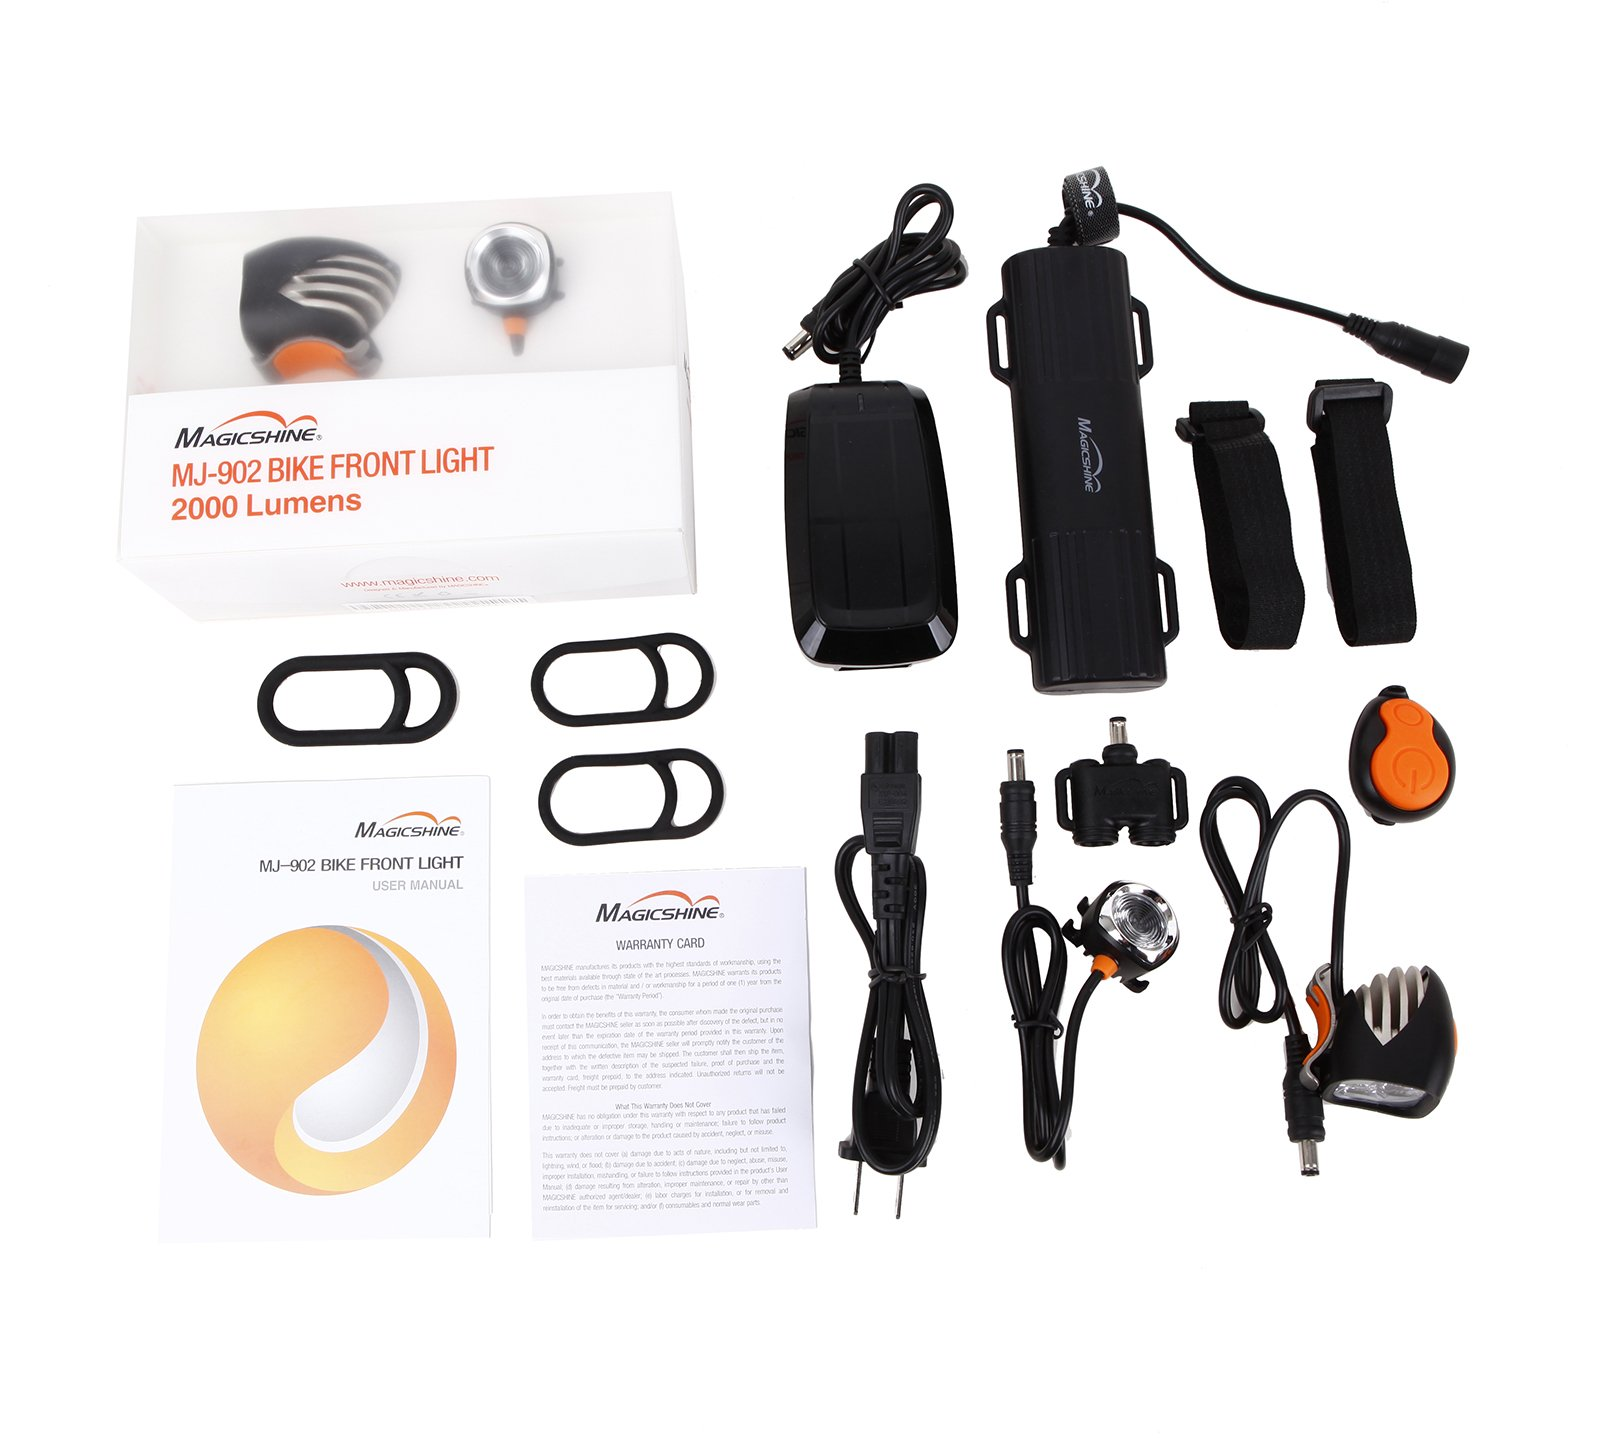 Magicshine MJ 902, 1600 Lumens Bike Light Set, Wireless Remote Bicycle Lights Front And Rear Combo, Rechargeable 2 CREE XM-L2 LED Bike Tail Light, Portable & Convenient Bright Bike Light by Magicshine (Image #2)